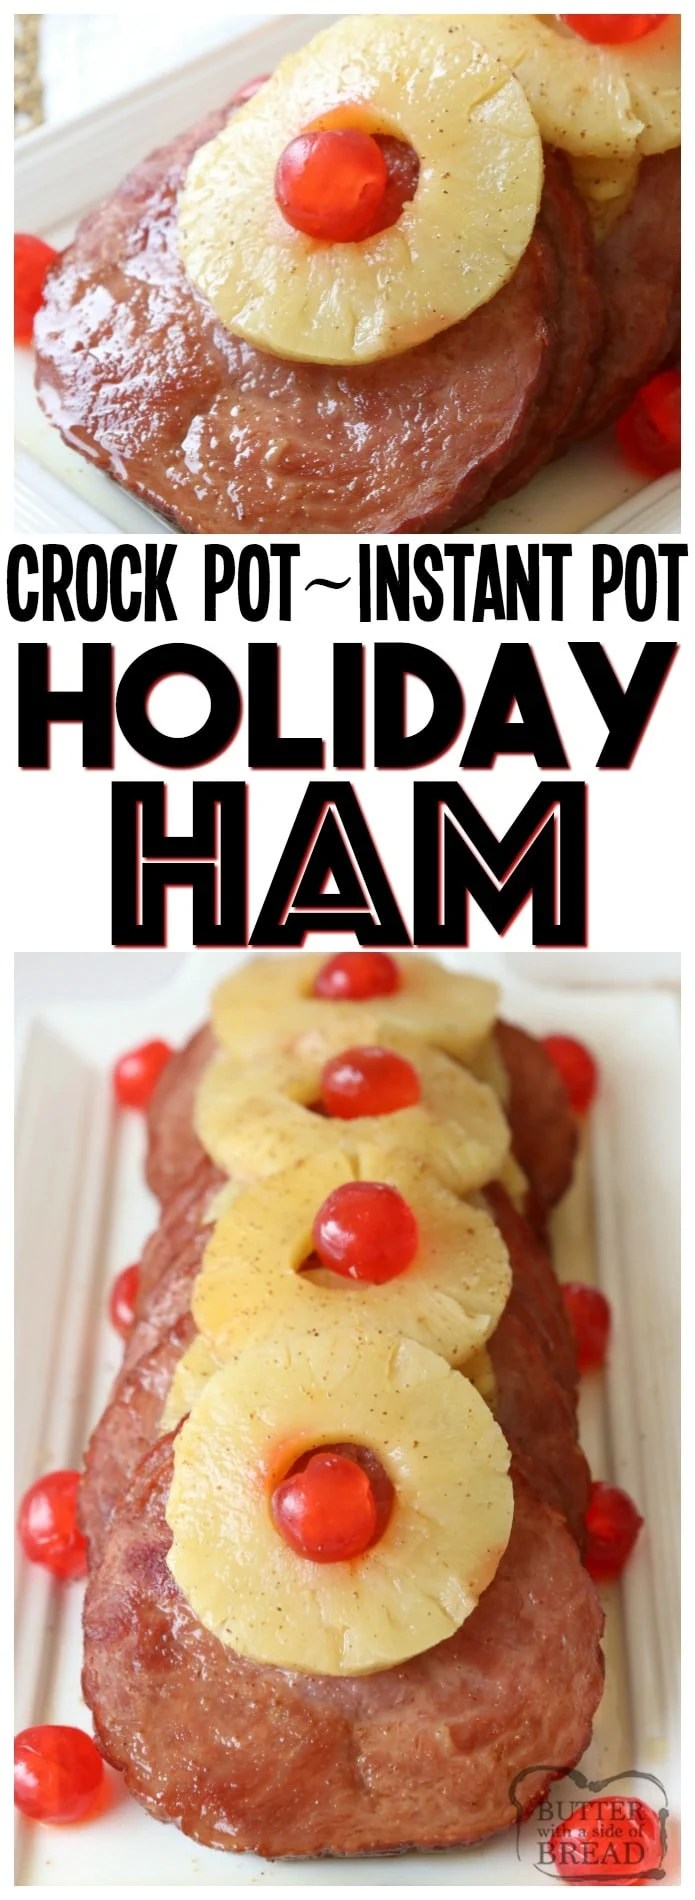 Crock Pot Ham is my favorite holiday ham recipe! Just 4 ingredients and can be made in the crockpot or Instant Pot. Brown sugar and pineapple provide a sweet, tangy flavor to the ham. Quick & easy ham recipe that takes just minutes to prepare and yields tender, flavorful and juicy ham. Best Ham Recipe ever! Crock Pot Ham or Instant Pot Ham from Butter With A Side of Bread #crockpot #slowcooker #ham #InstantPot #holiday #recipe #food